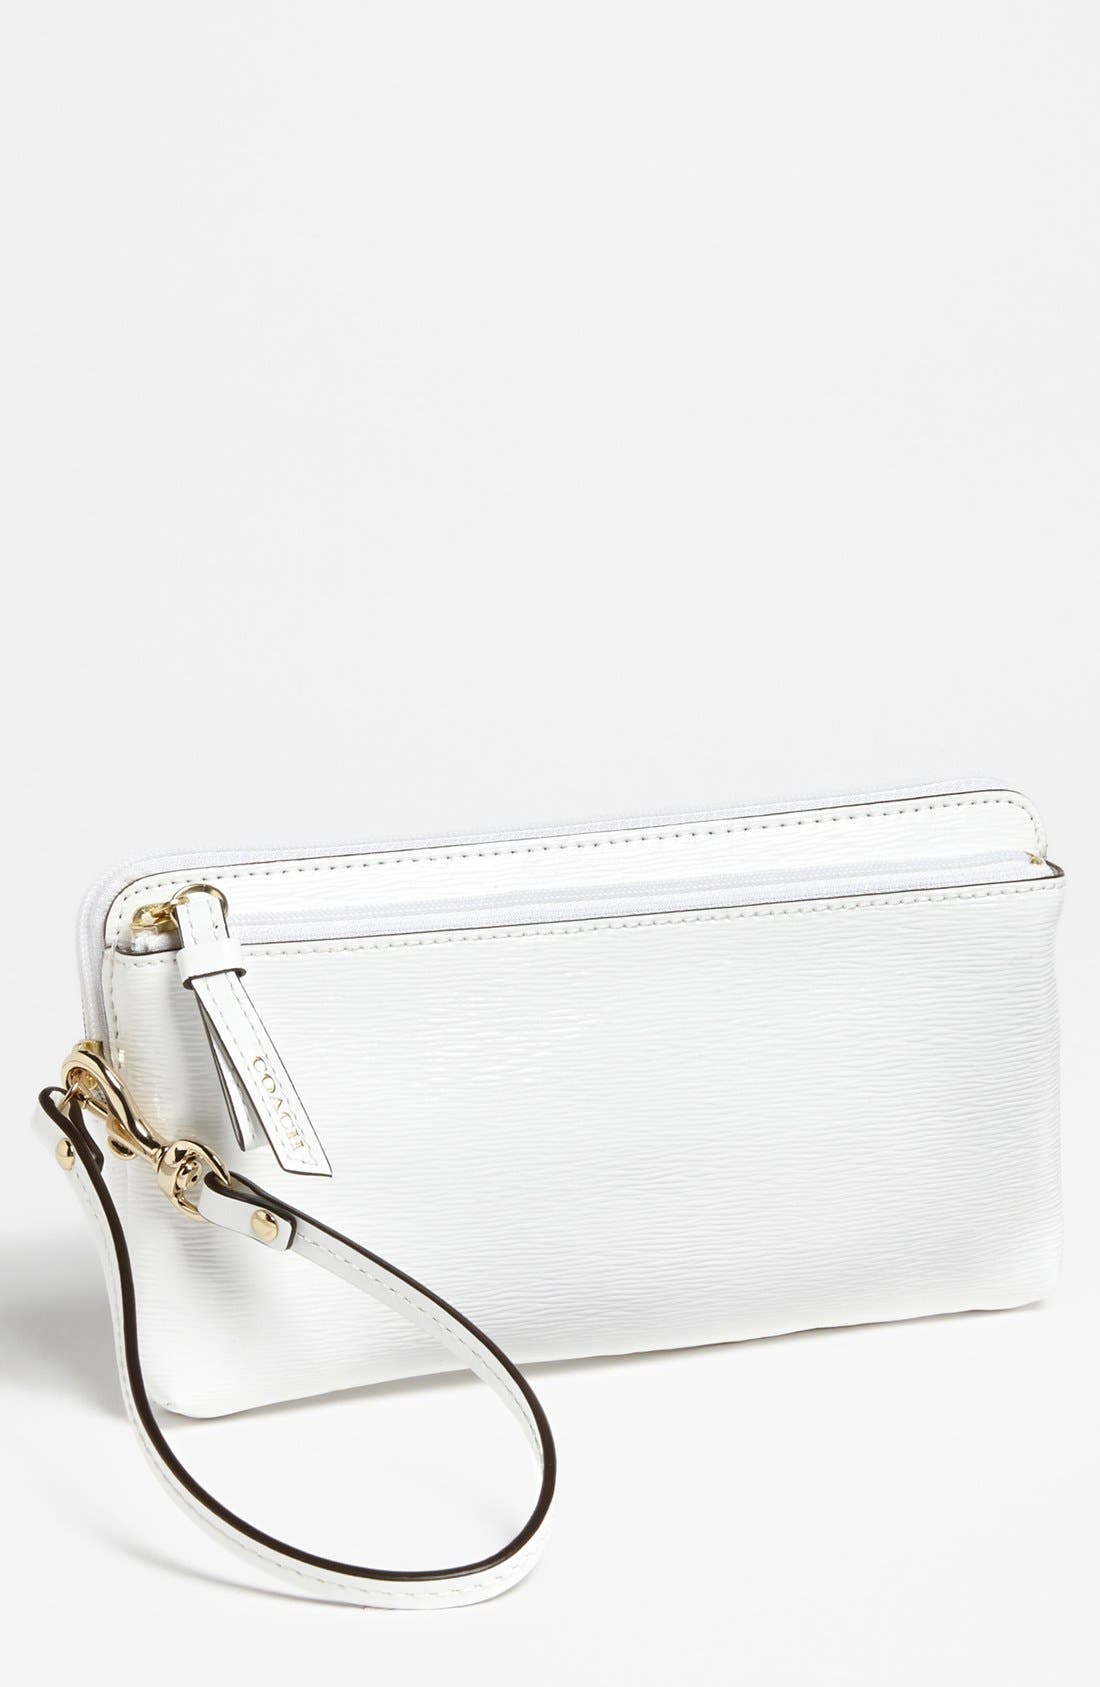 Main Image - COACH 'Poppy' Textured Patent Leather Wallet